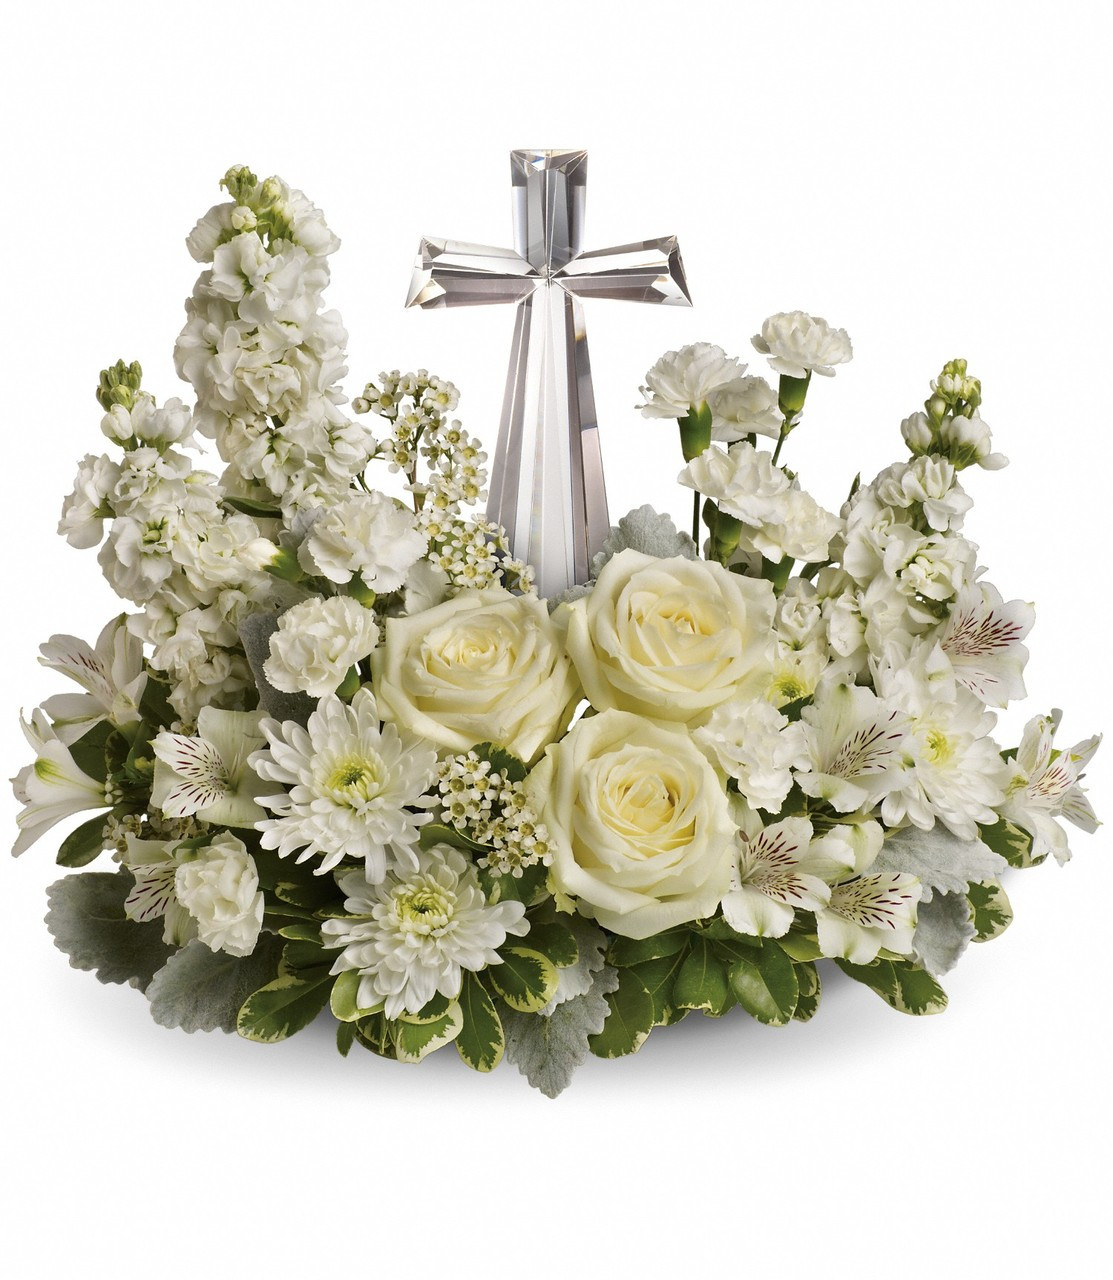 Crystal cross all white sympathy flower arrangement by enchanted florist divine peace crystal cross sympathy flowers by enchanted florist pasadena tx all white roses and izmirmasajfo